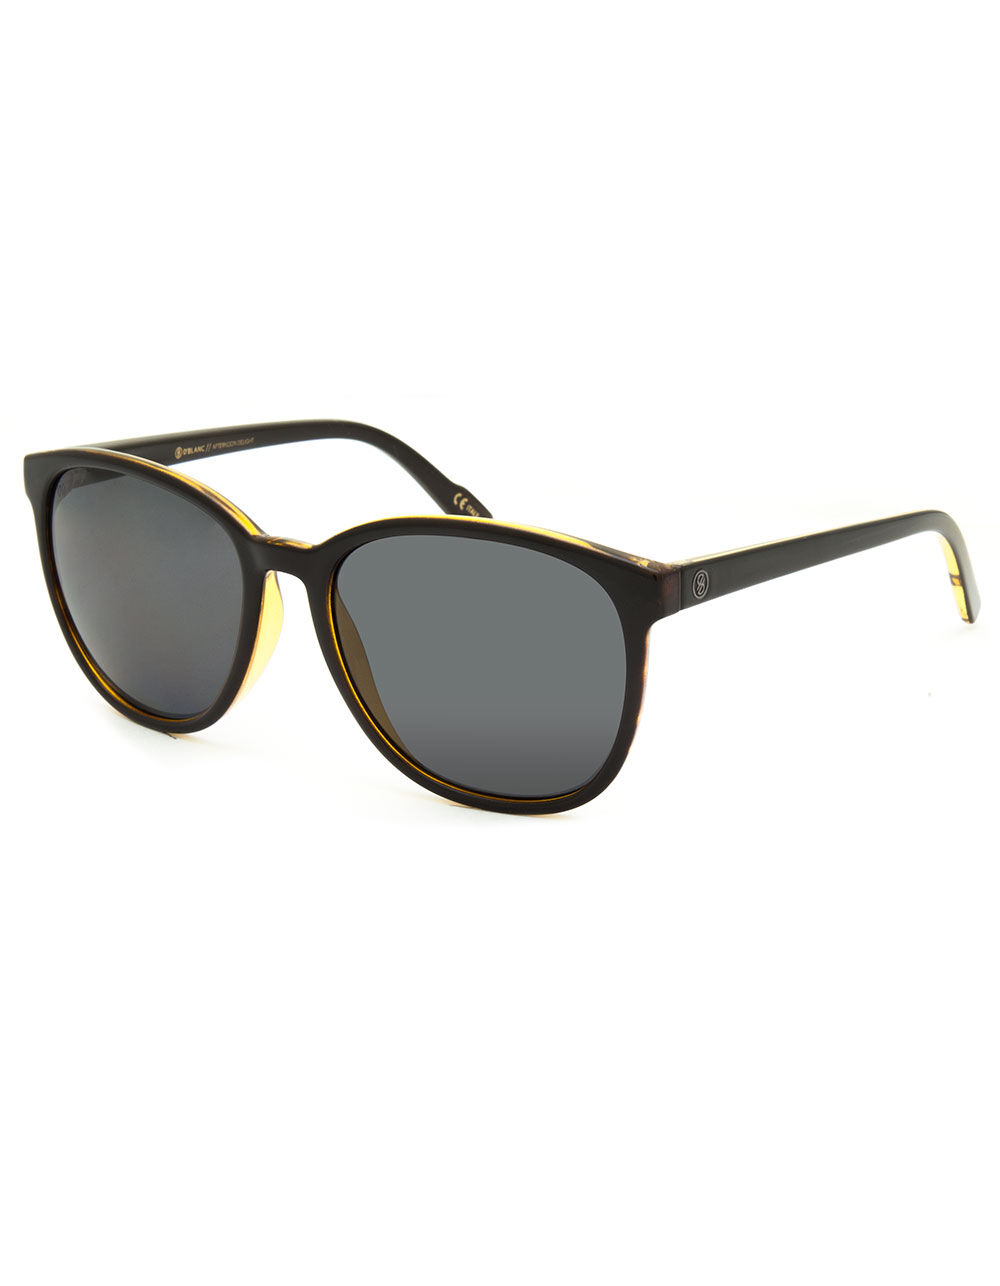 Image of D'BLANC AFTERNOON DELIGHT POLARIZED SUNGLASSES